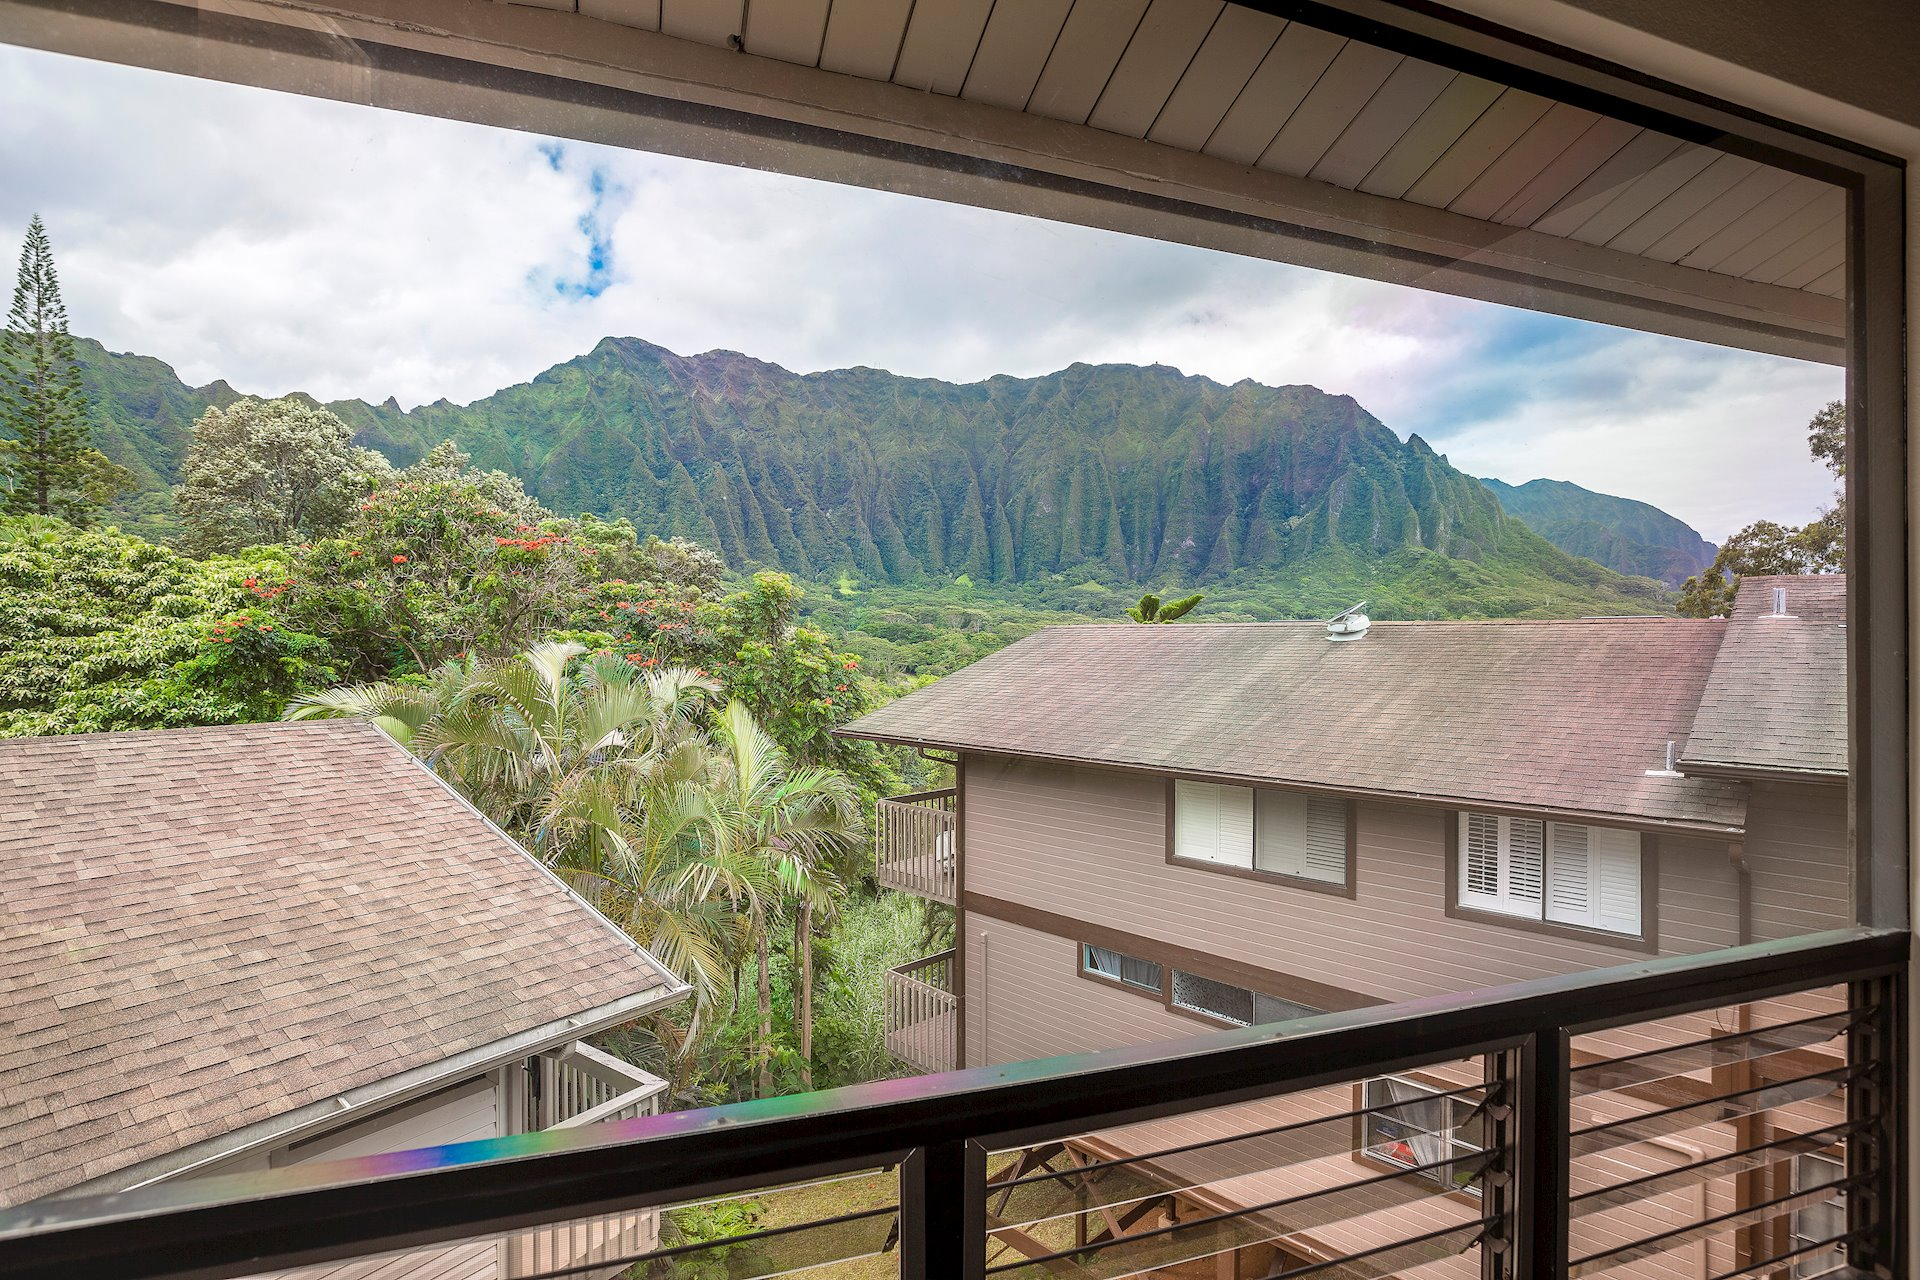 The view of the mesmerizing Koolau Mountain Range...